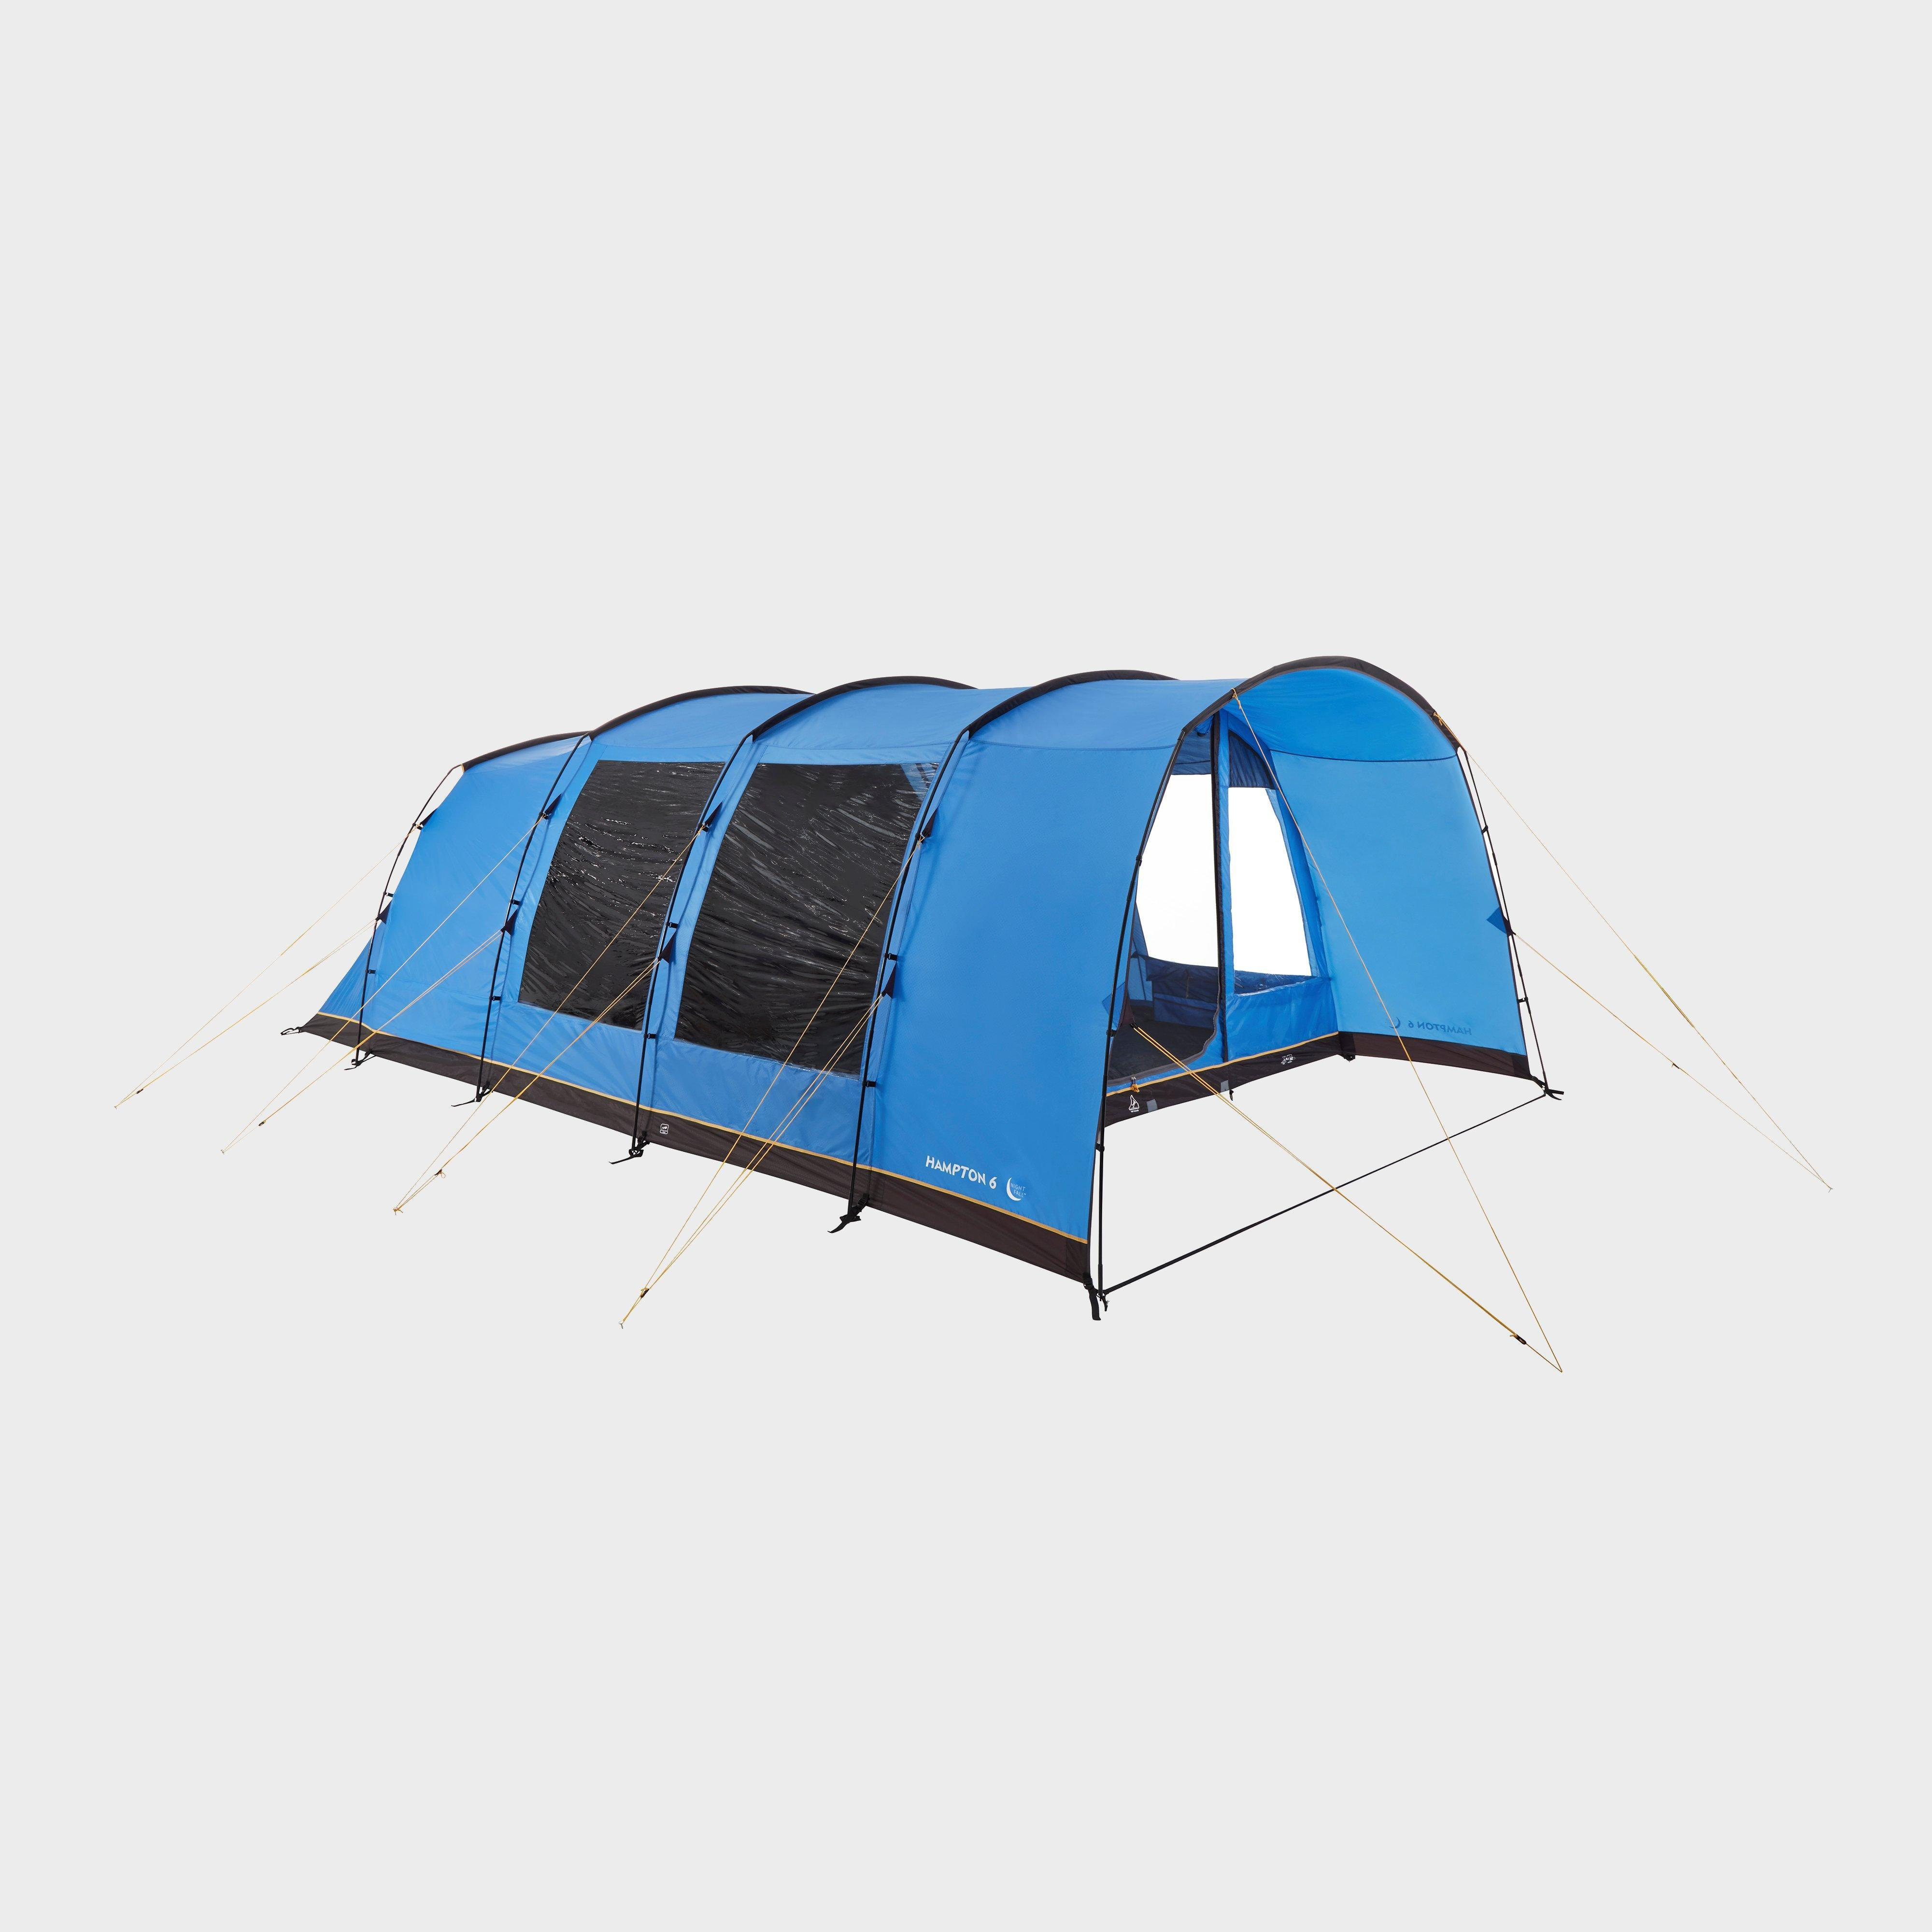 Hi-Gear Hi-Gear Hampton 6 Nightfall Family Tent, Blue